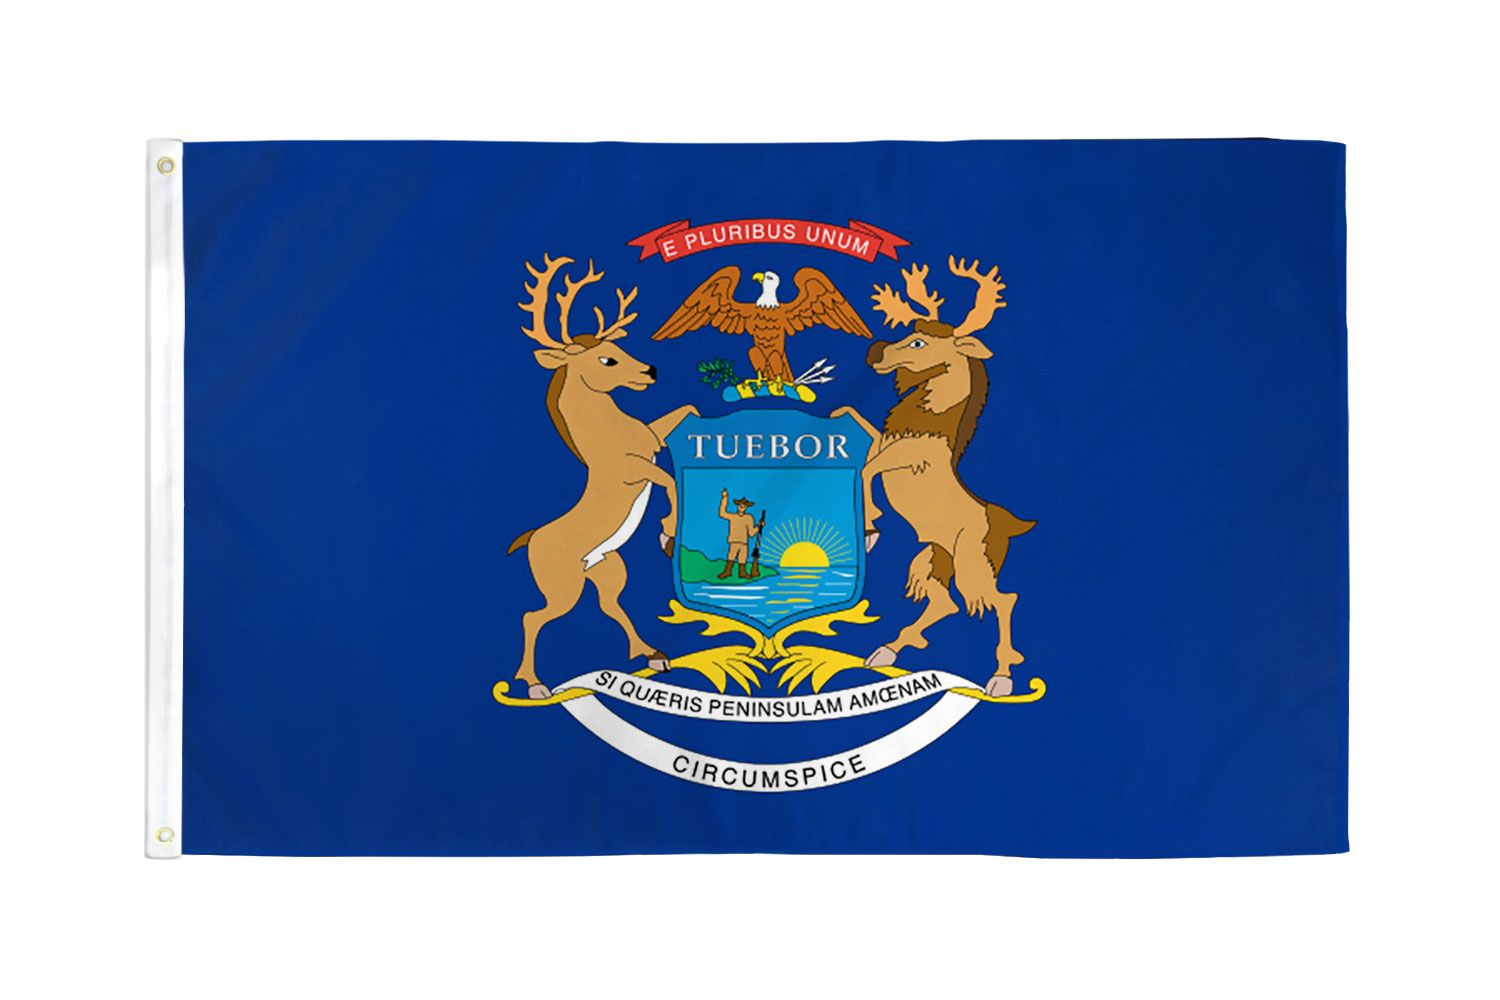 Shop72 - High Quality US State Flags - 100D 3x5 Polyester Flags - Michigan One Size